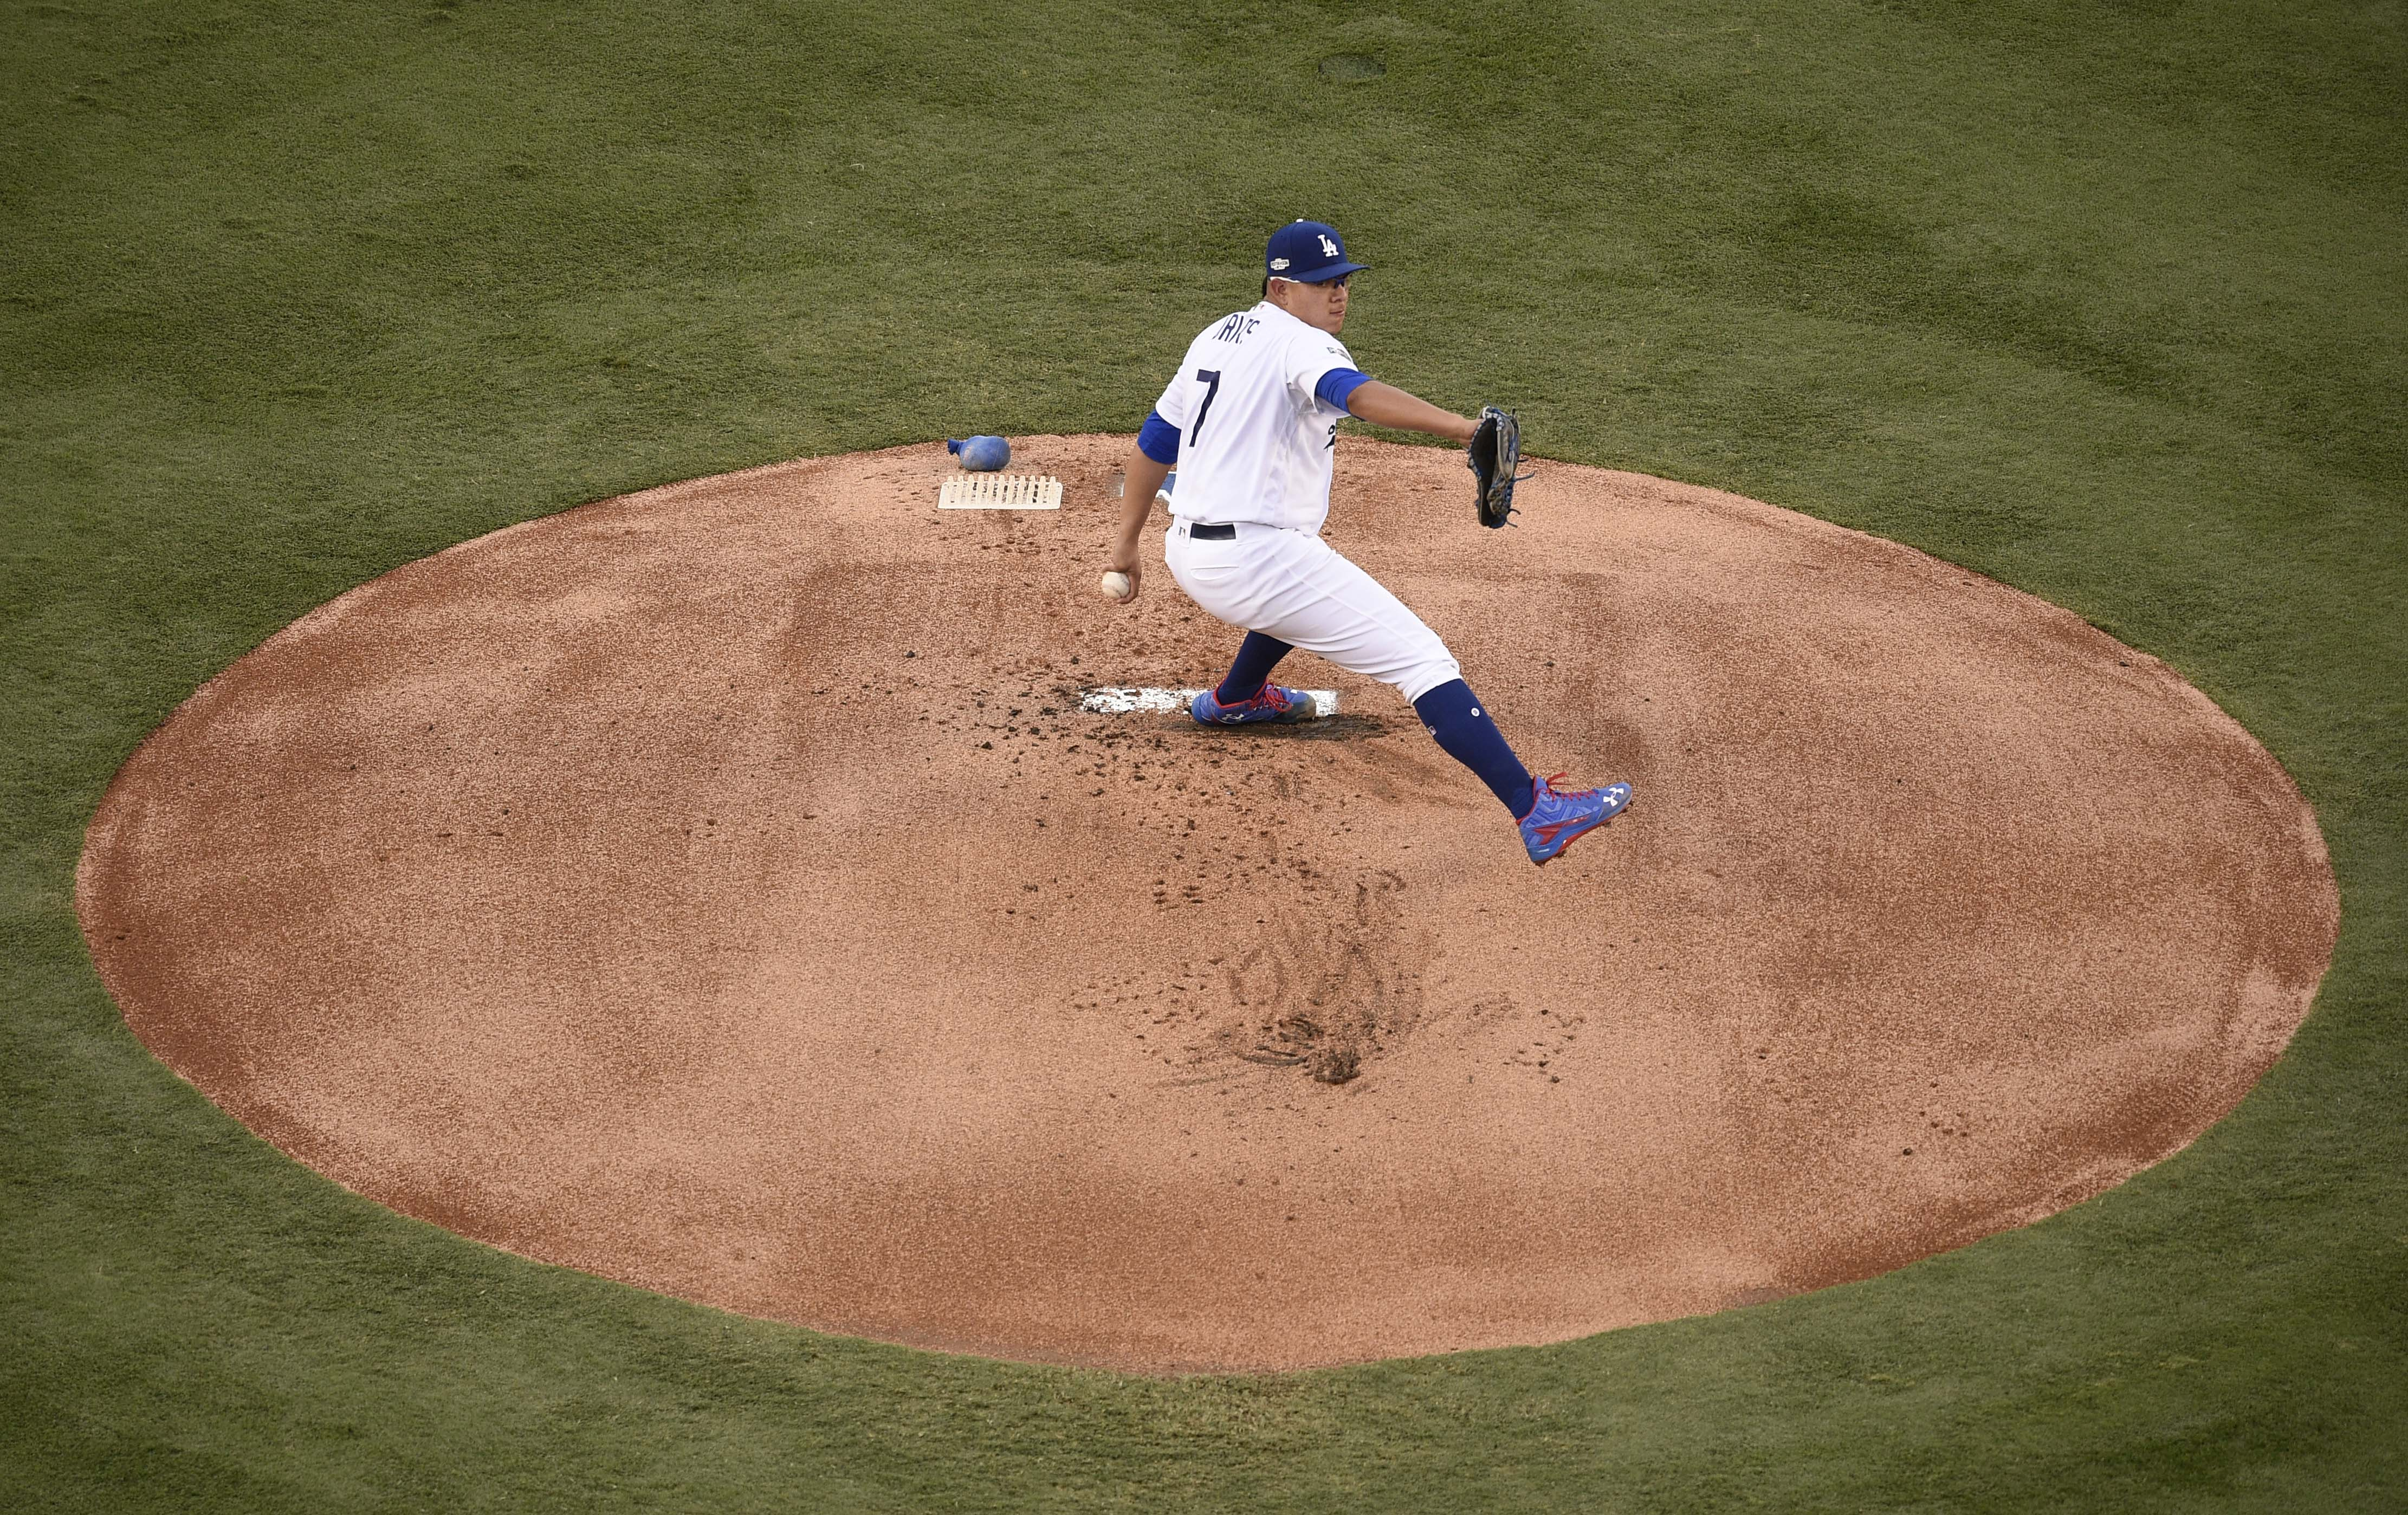 9619204-mlb-nlcs-chicago-cubs-at-los-angeles-dodgers